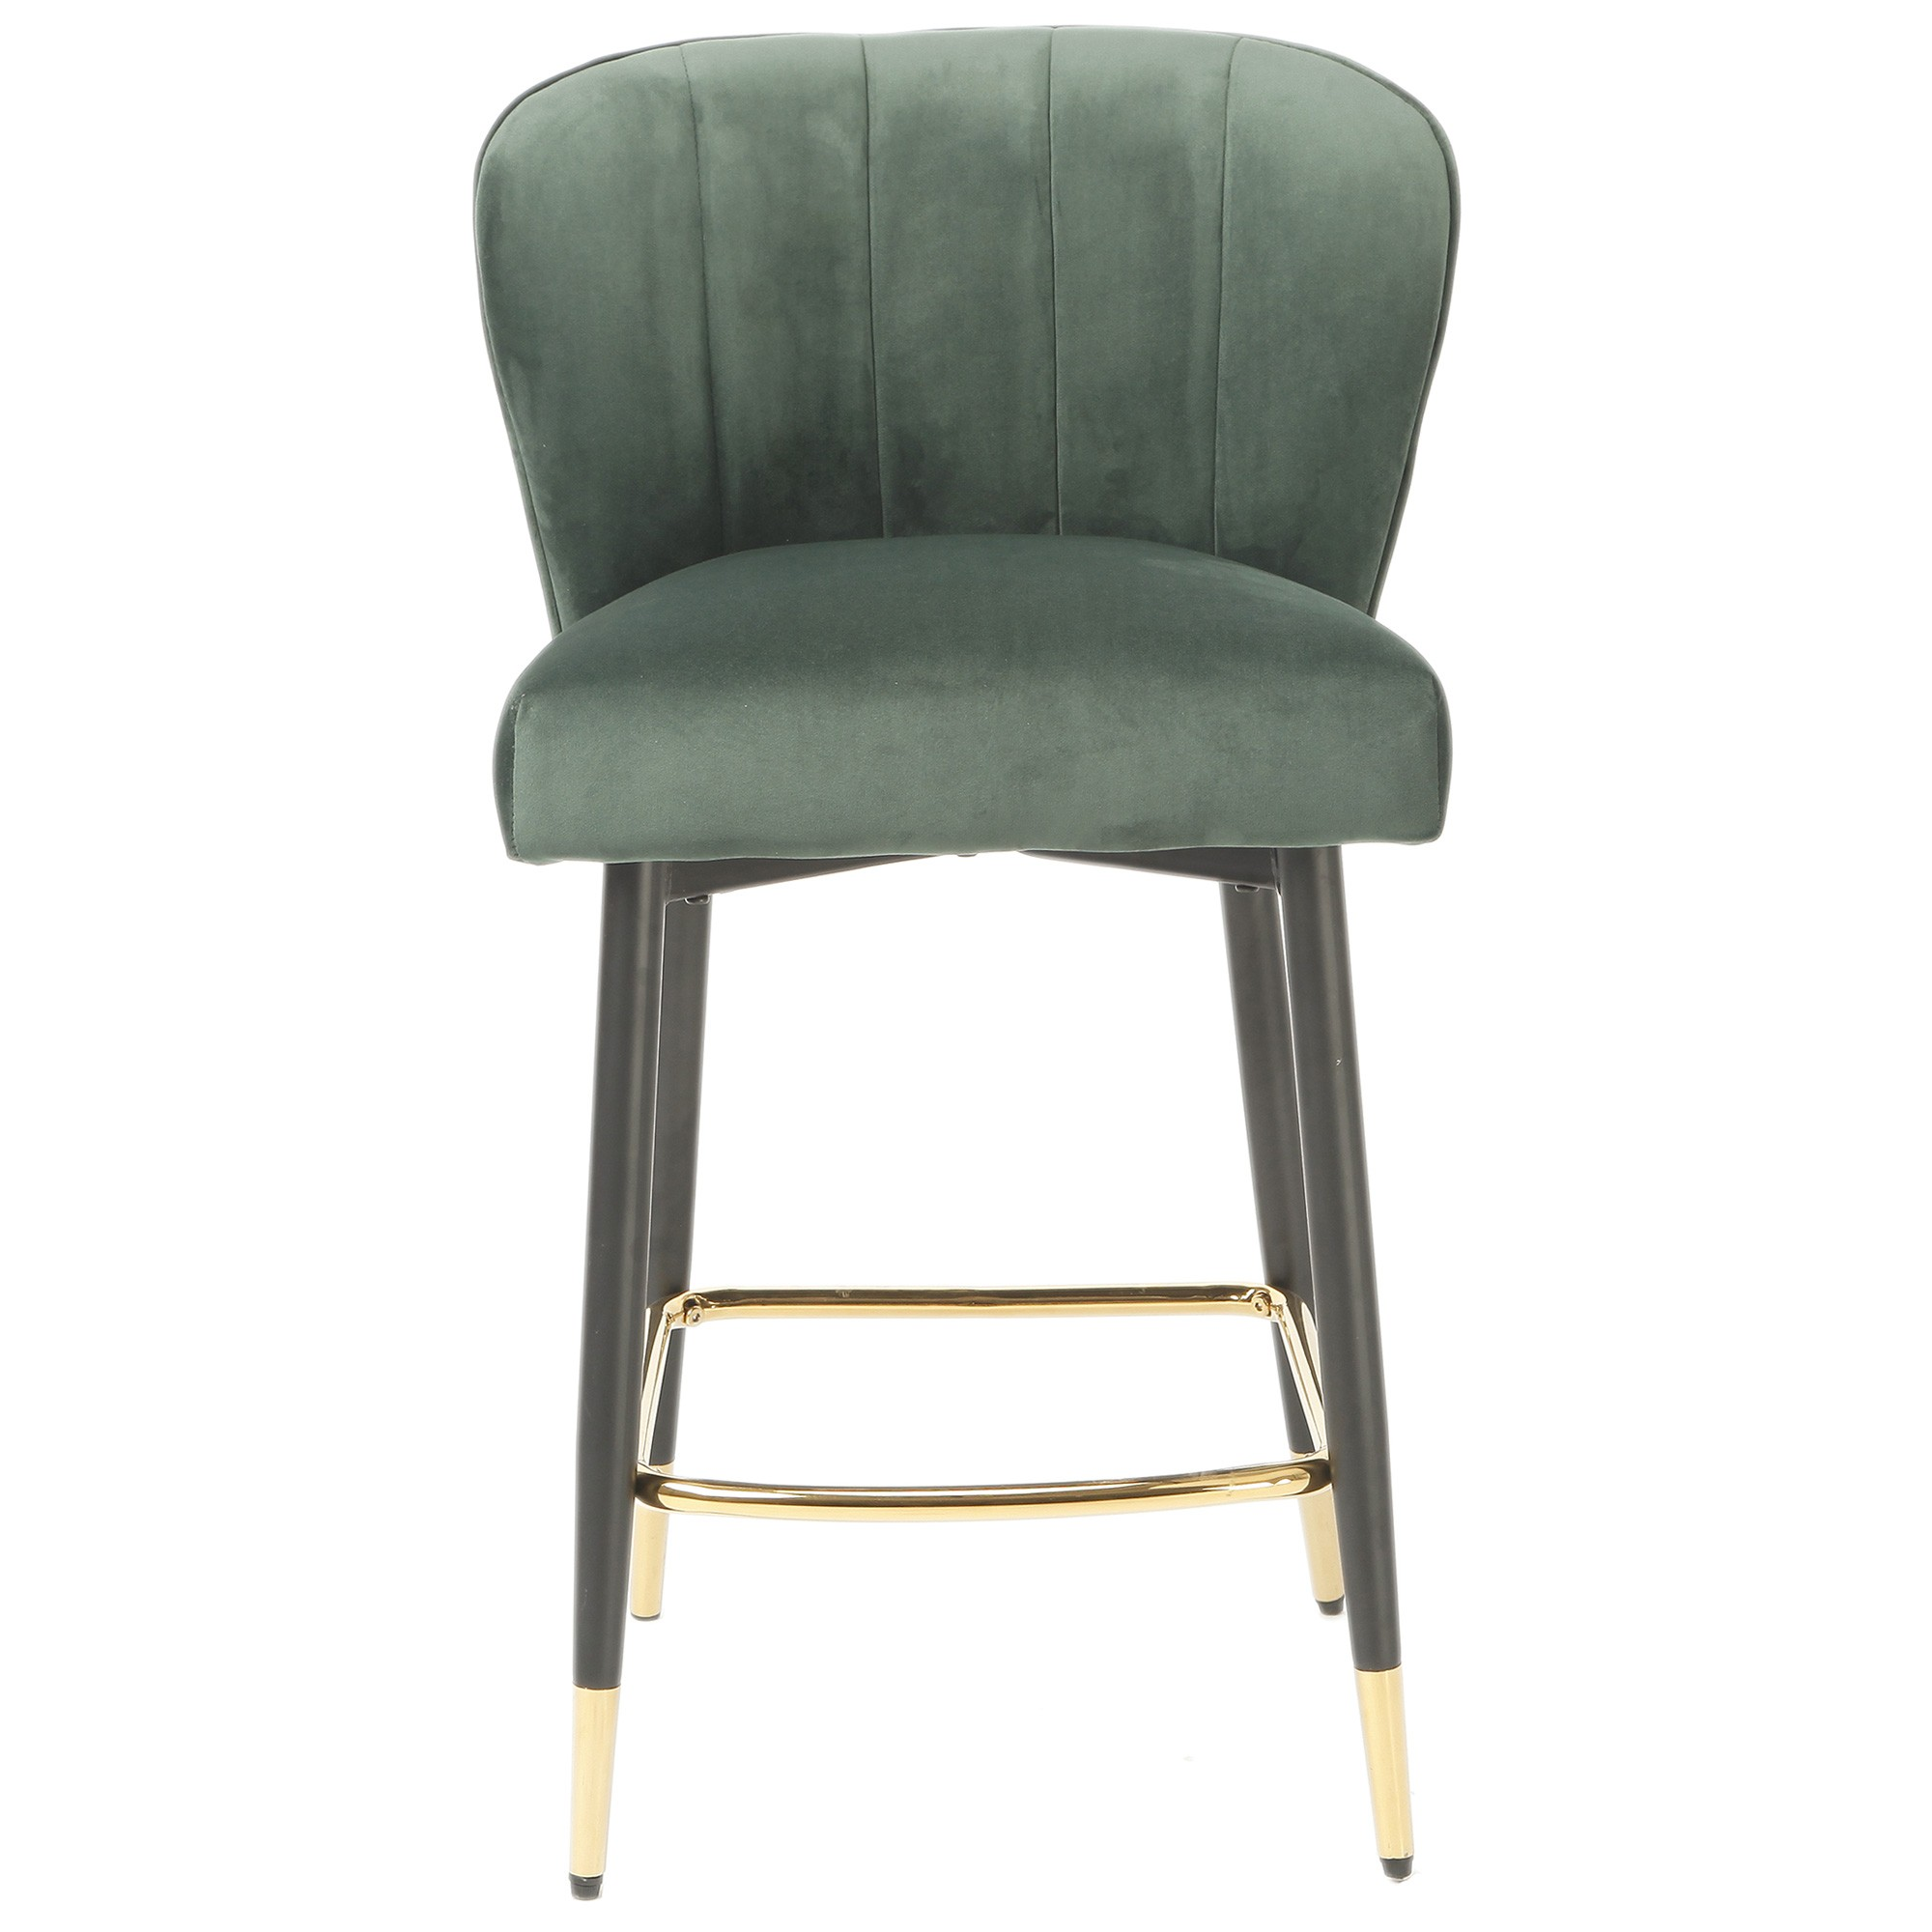 Flinders Velvet Fabric Counter Stool, Emerald